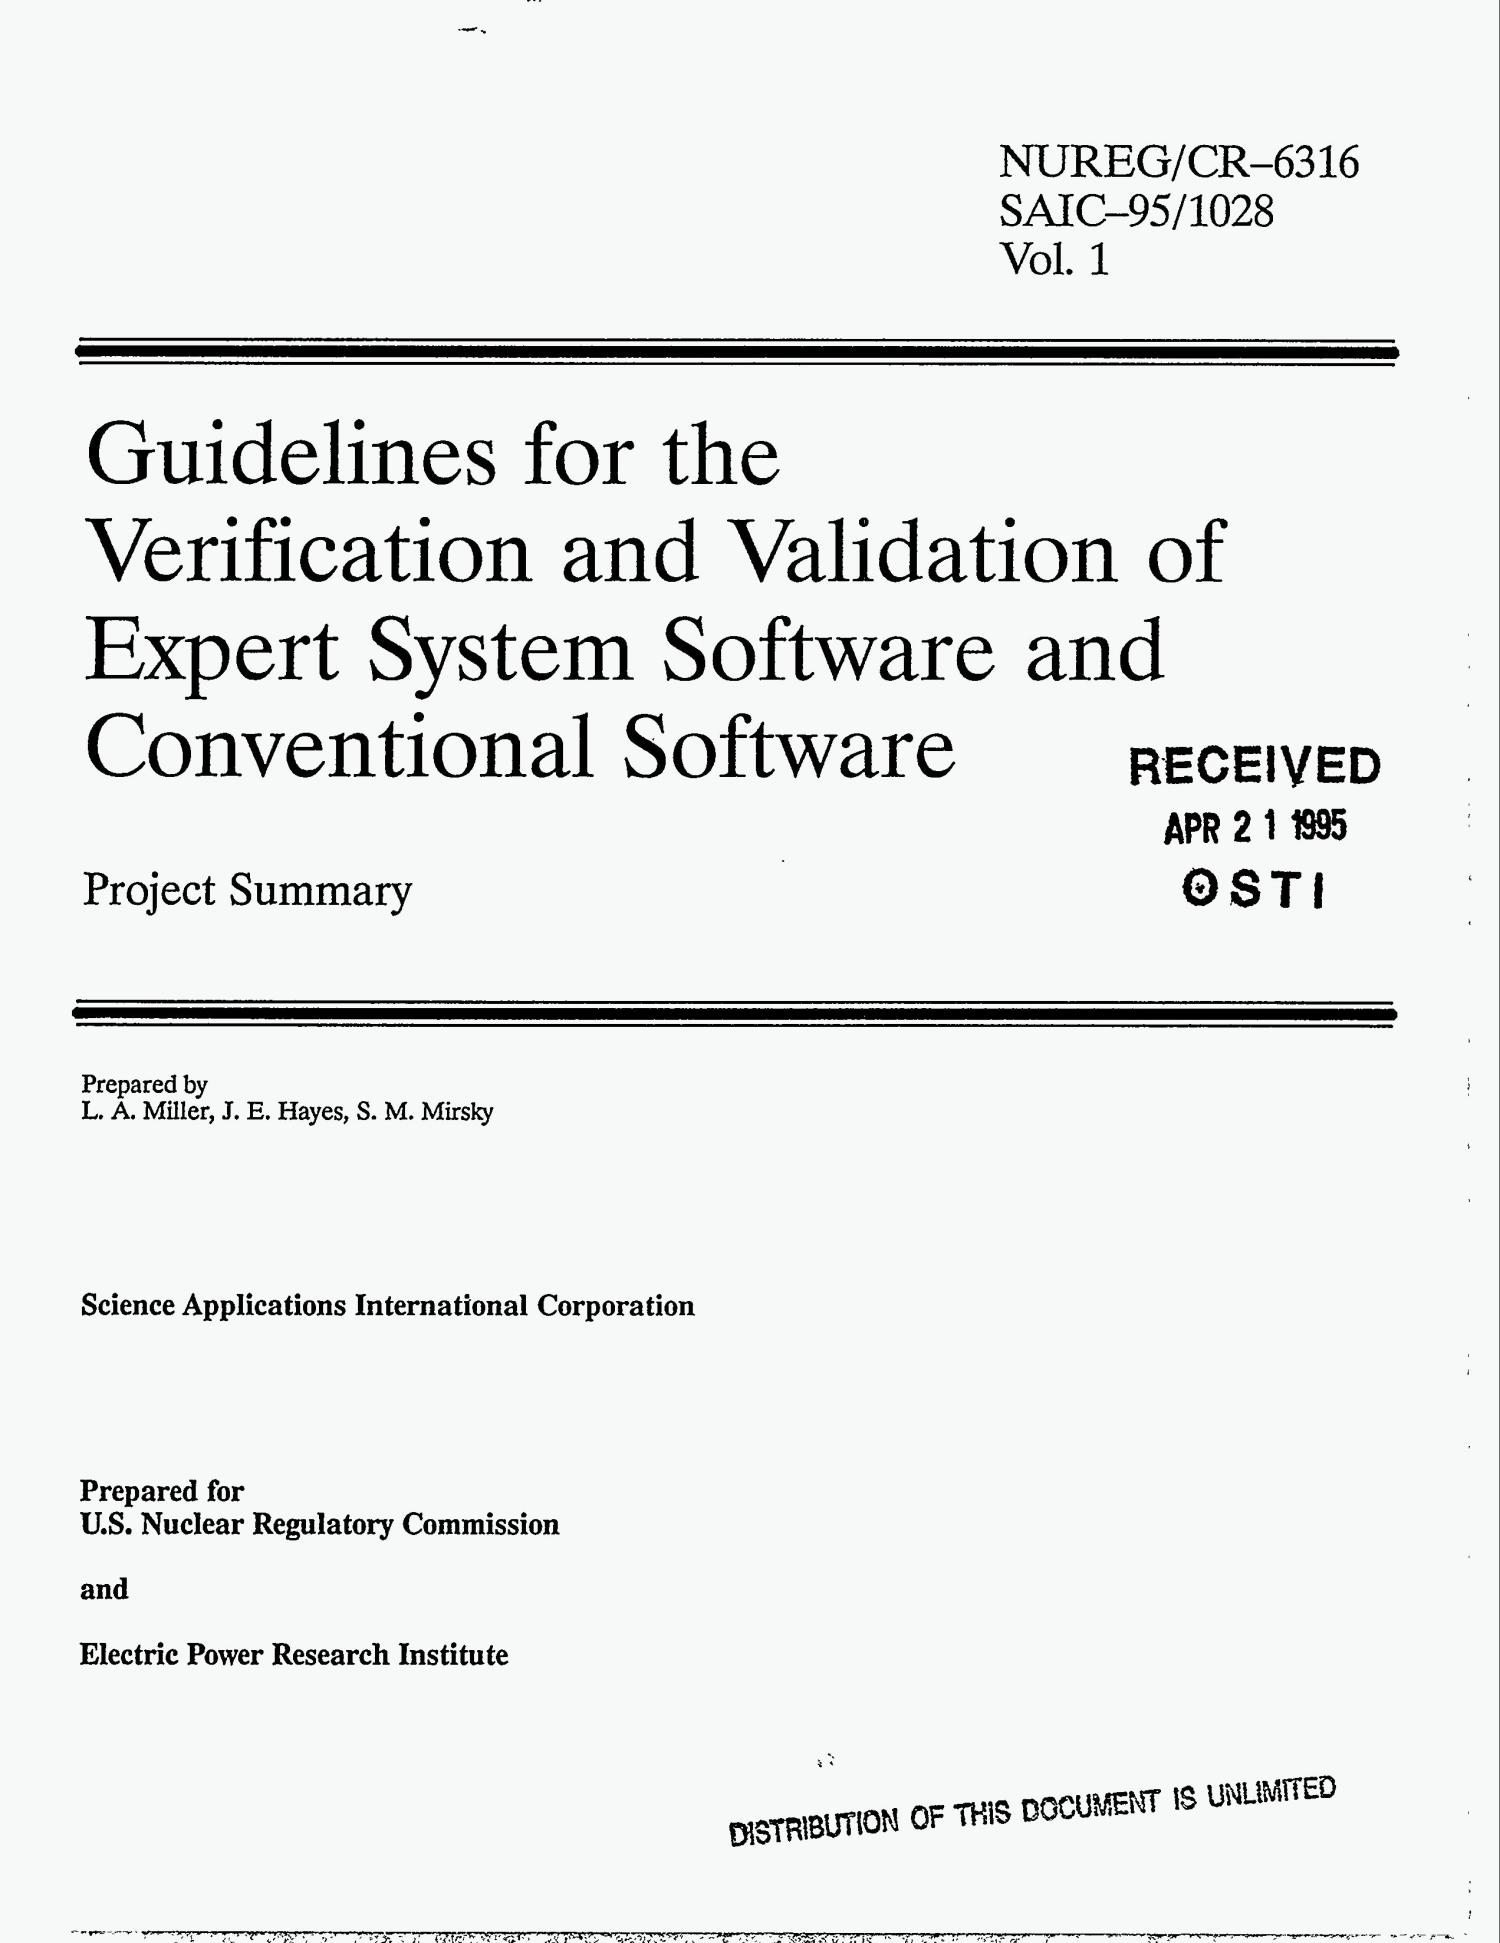 Guidelines for the verification and validation of expert system software and conventional software: Project summary. Volume 1                                                                                                      [Sequence #]: 1 of 178